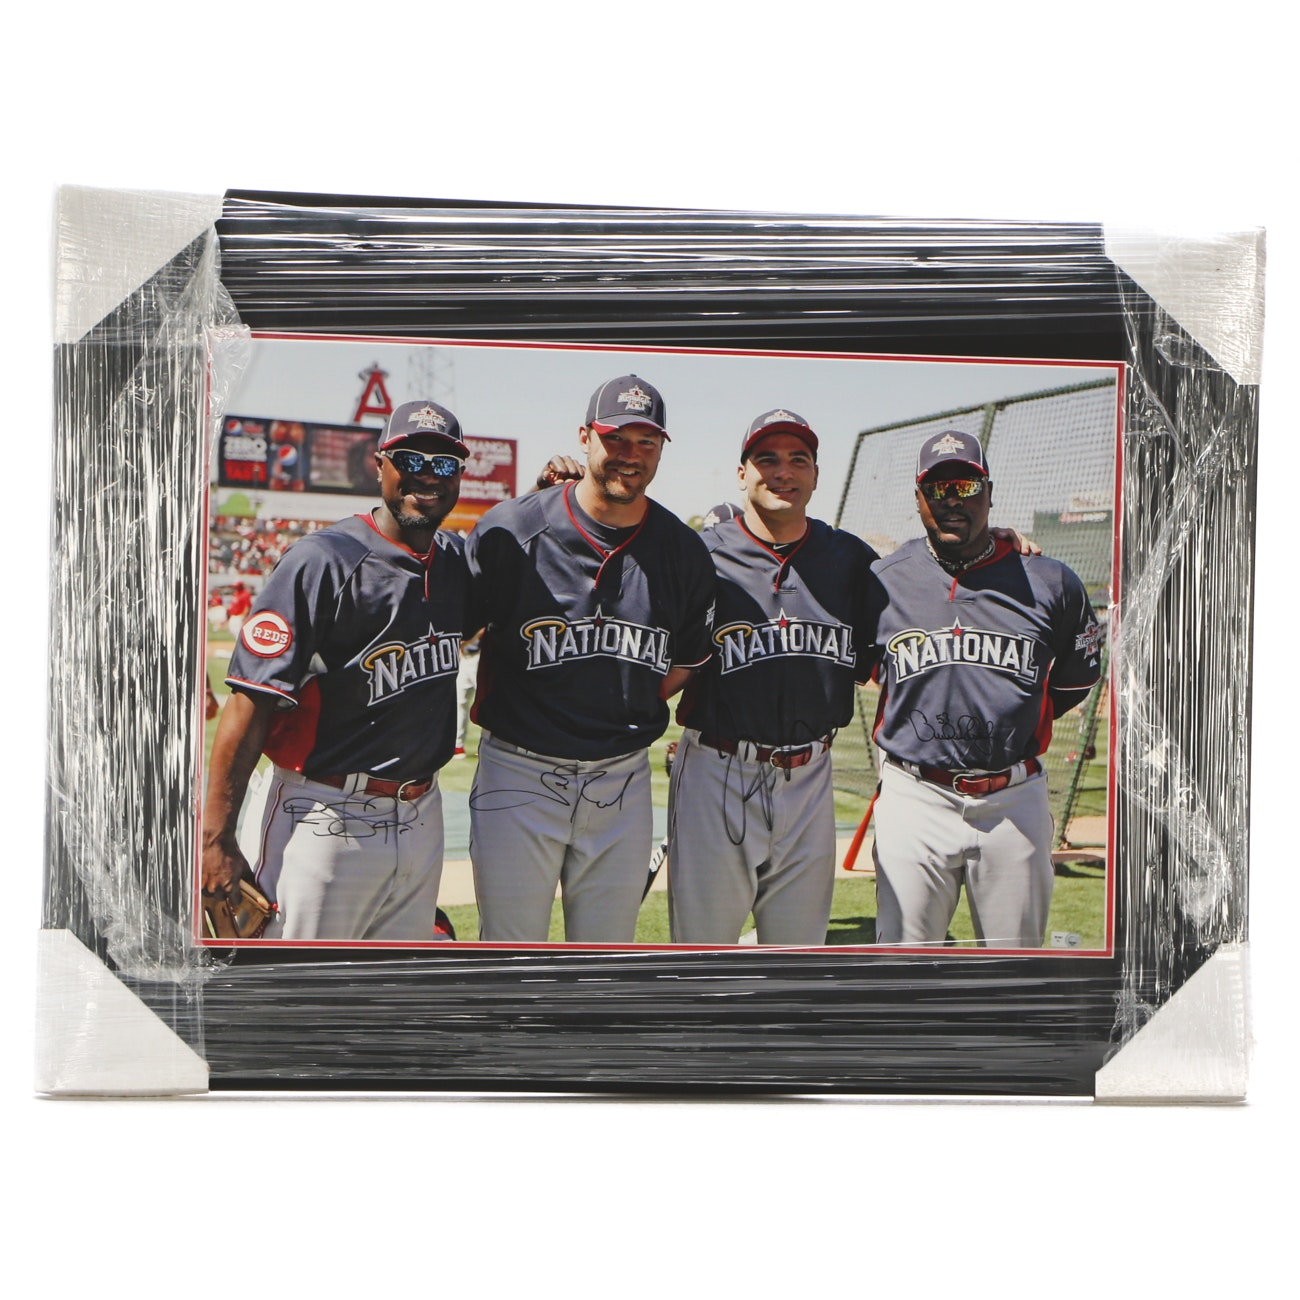 2010 Reds NL All-Stars Votto, Phillips, Rhodes, and Rolen Signed Display